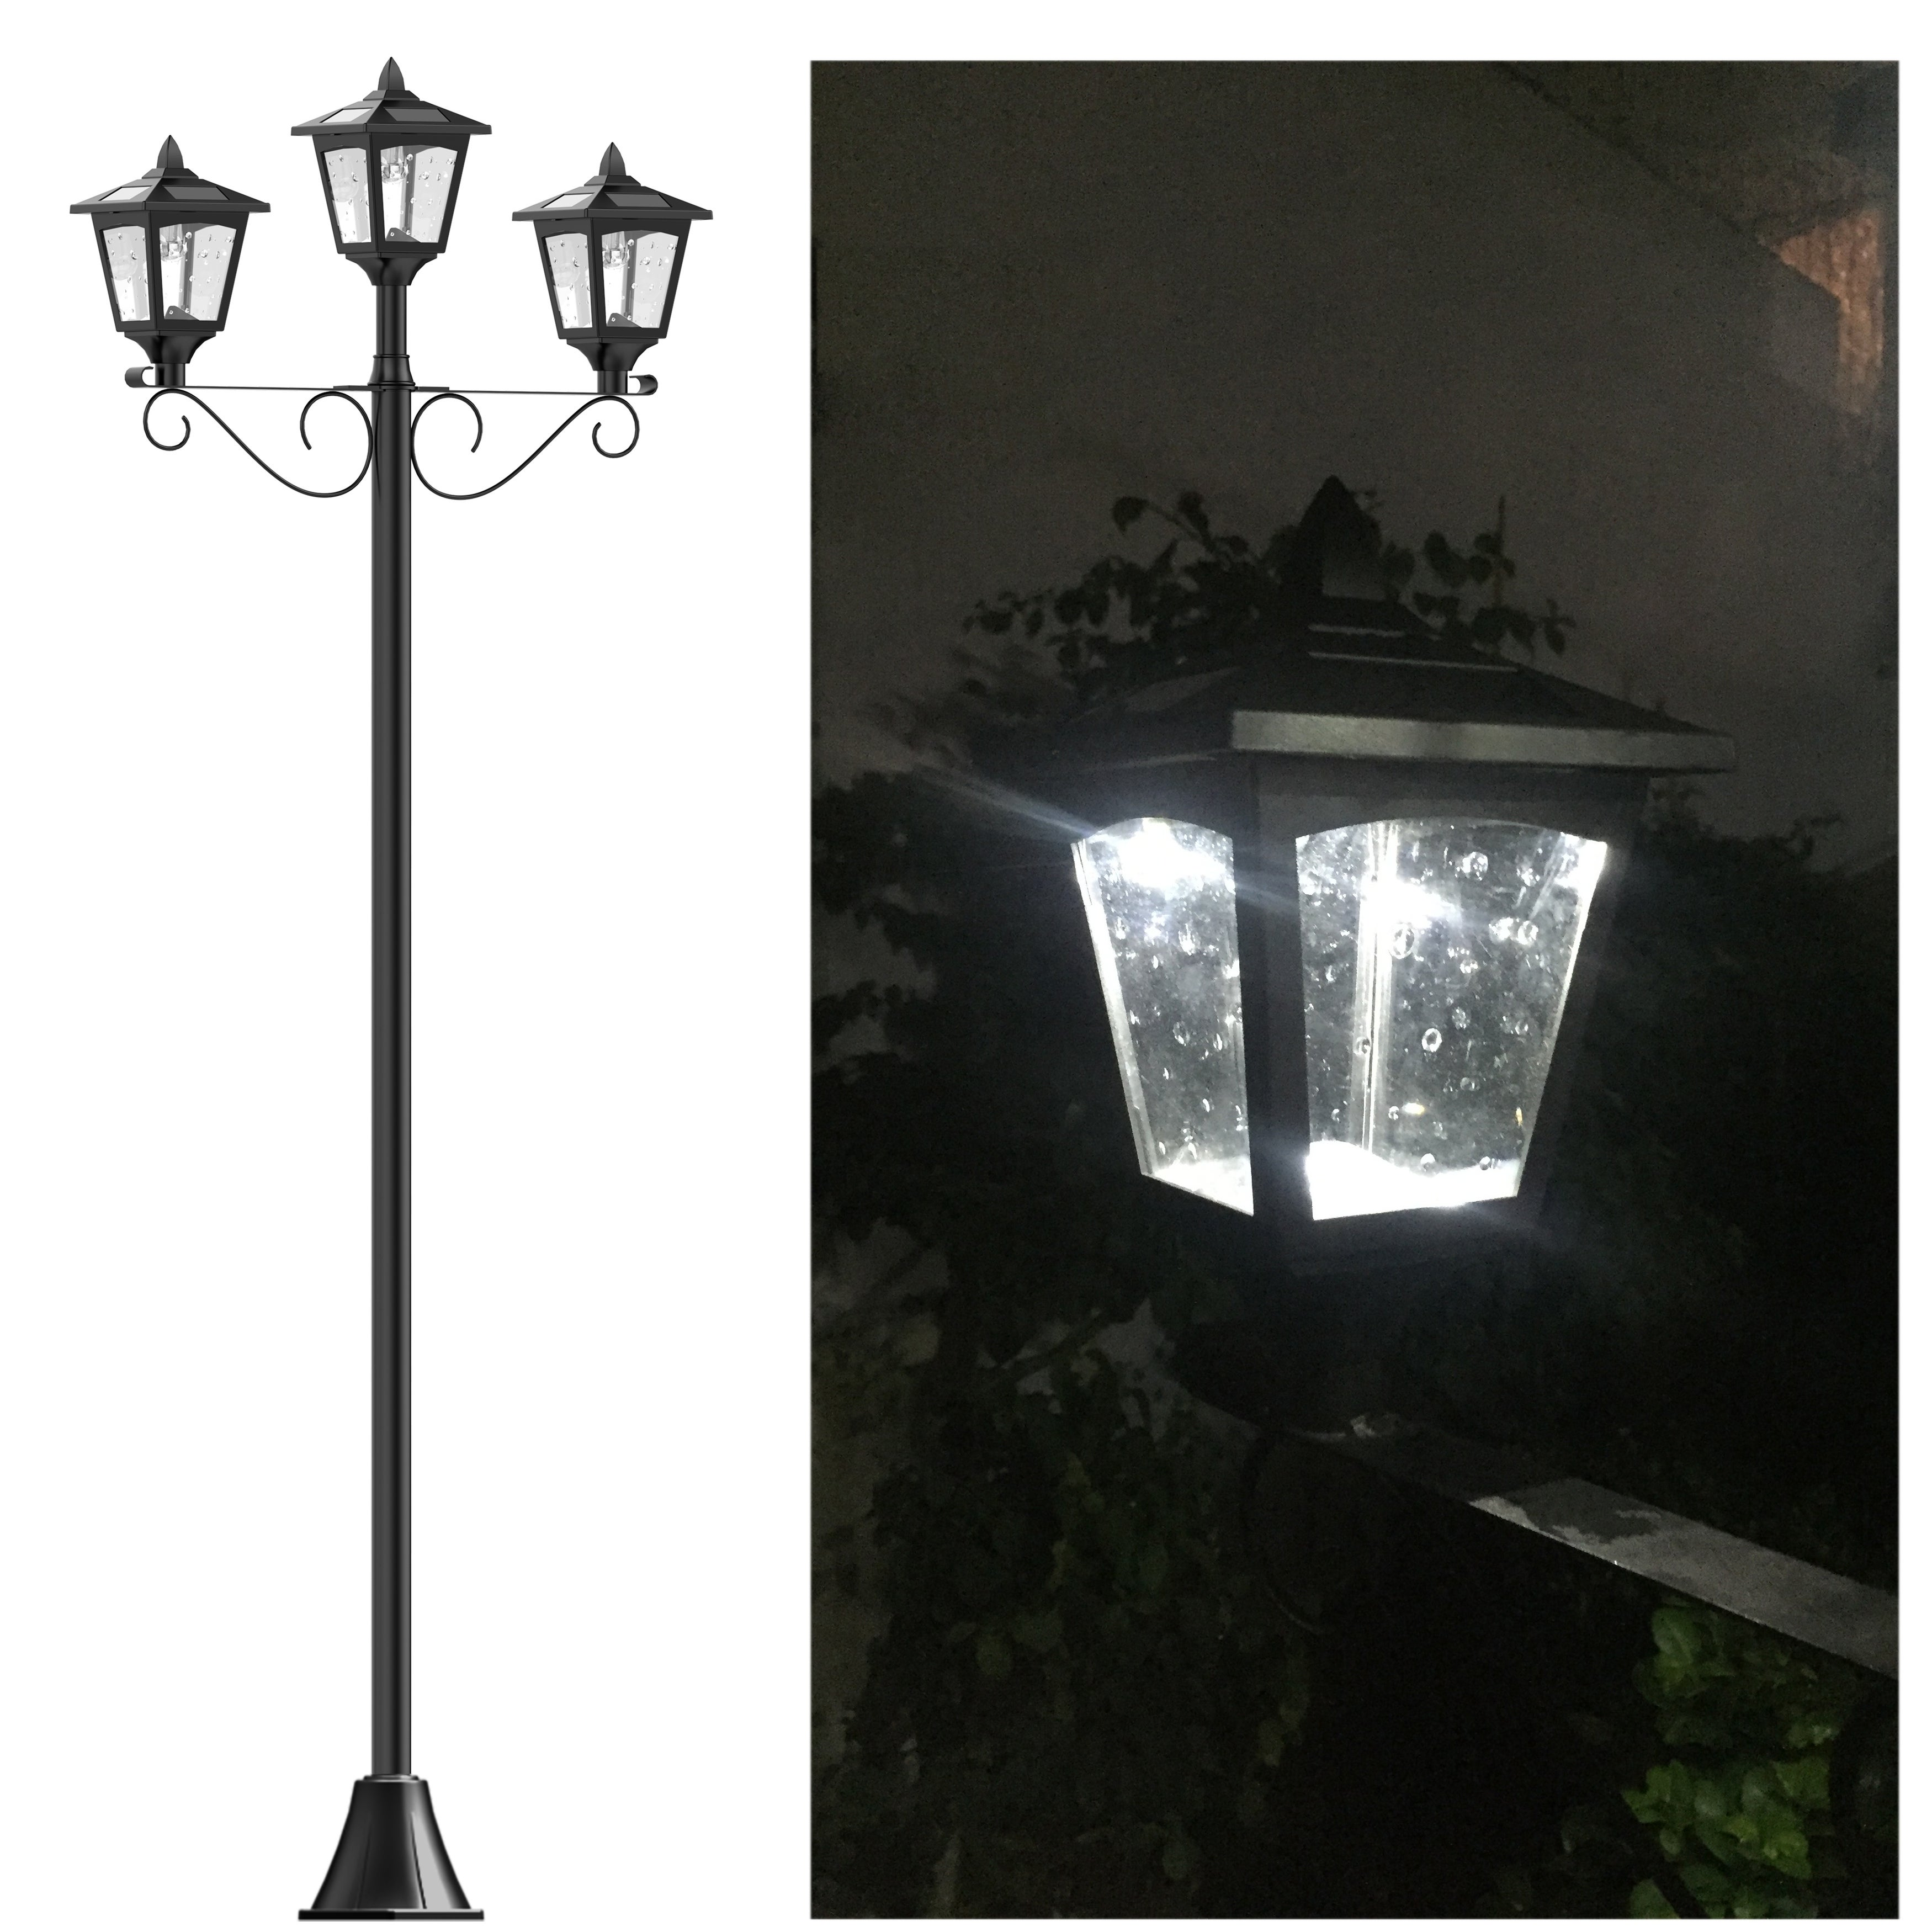 Kanstar upgrade 72 triple head street vintage outdoor garden solar kanstar upgrade 72 triple head street vintage outdoor garden solar lamp post light lawn black free shipping today overstock 25685886 aloadofball Image collections